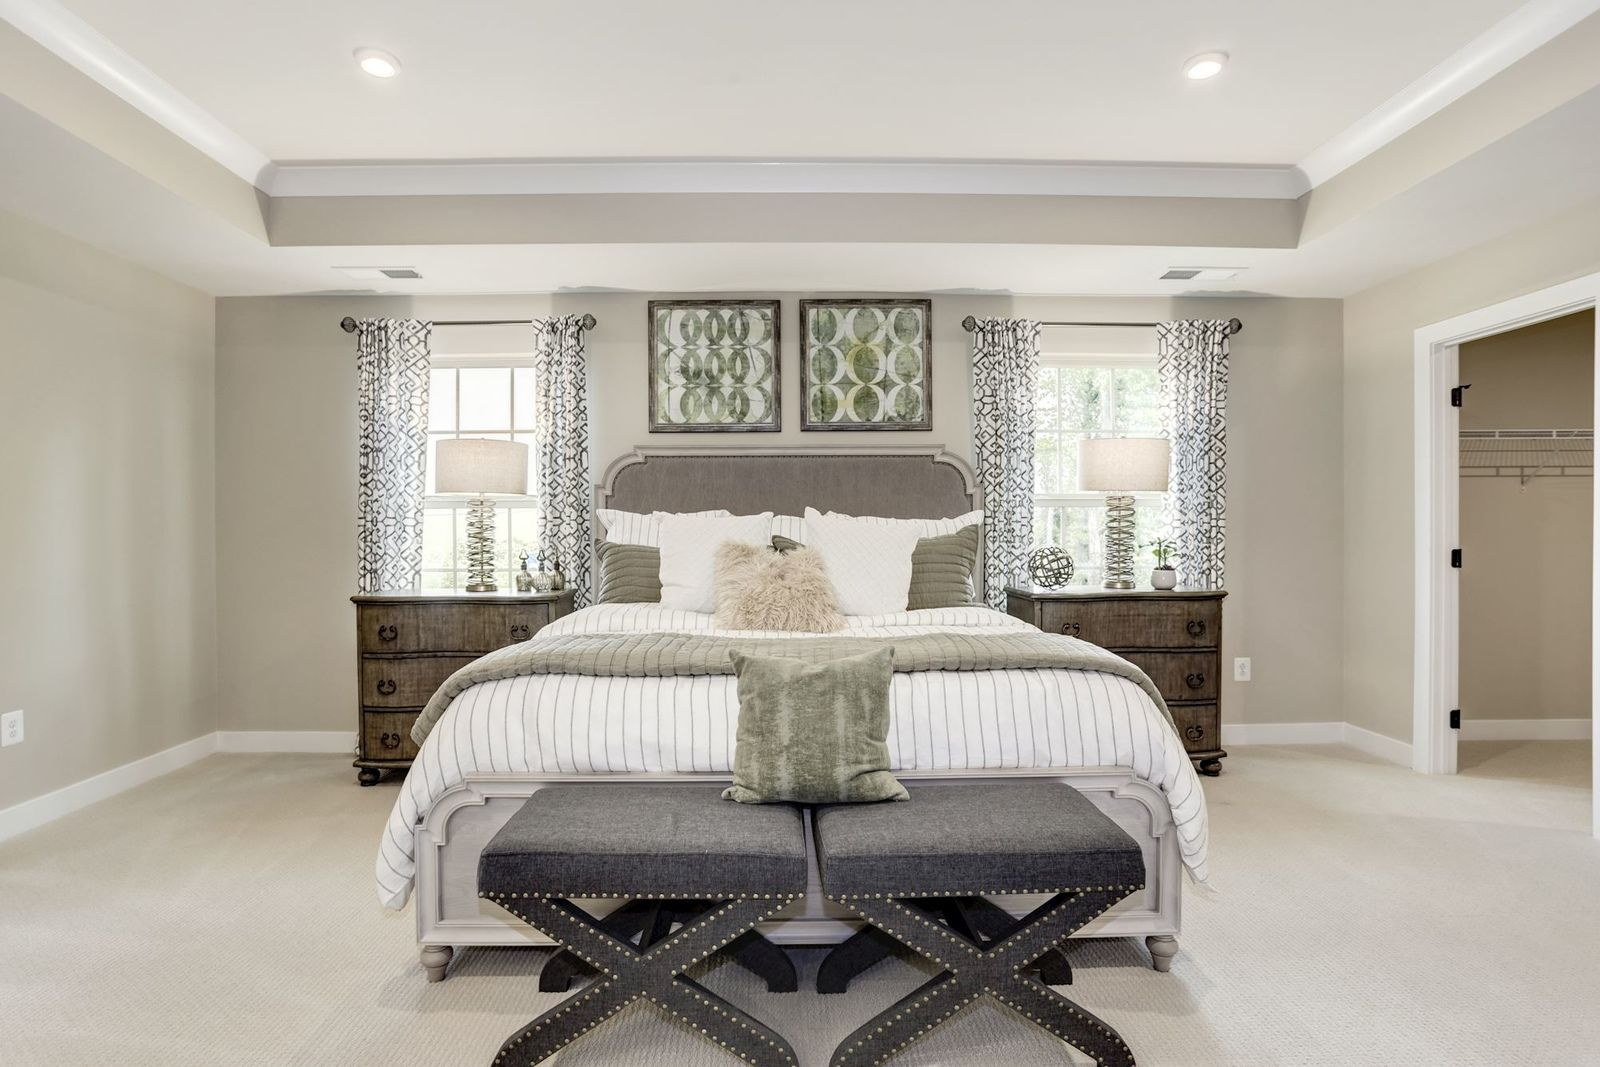 Bedroom featured in the Corsica By Ryan Homes in Washington, MD